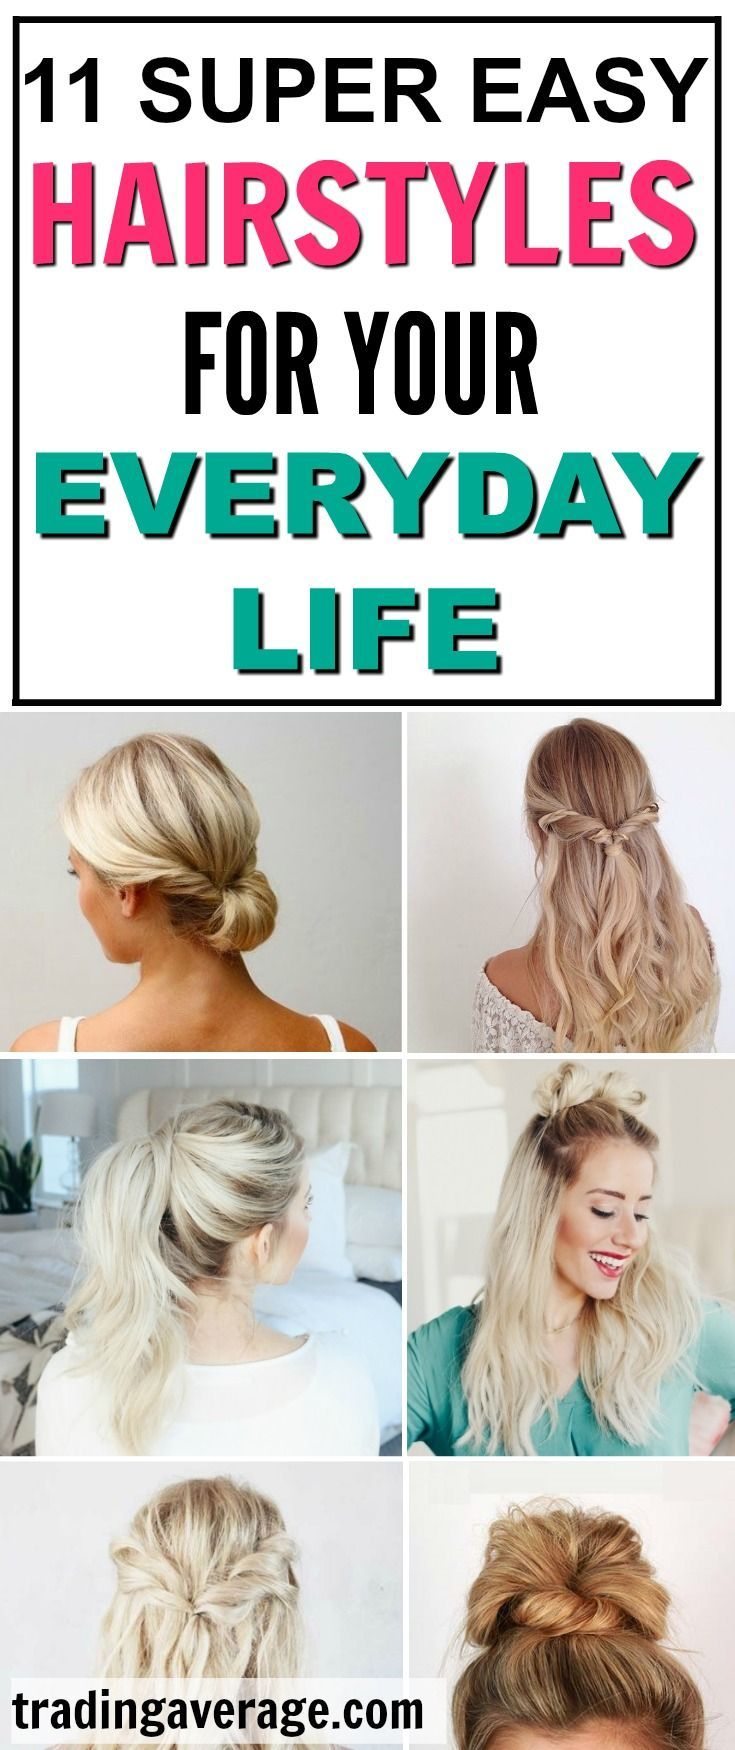 11 Super Easy Hairstyles For Everyday Life Millennial Lifestyle